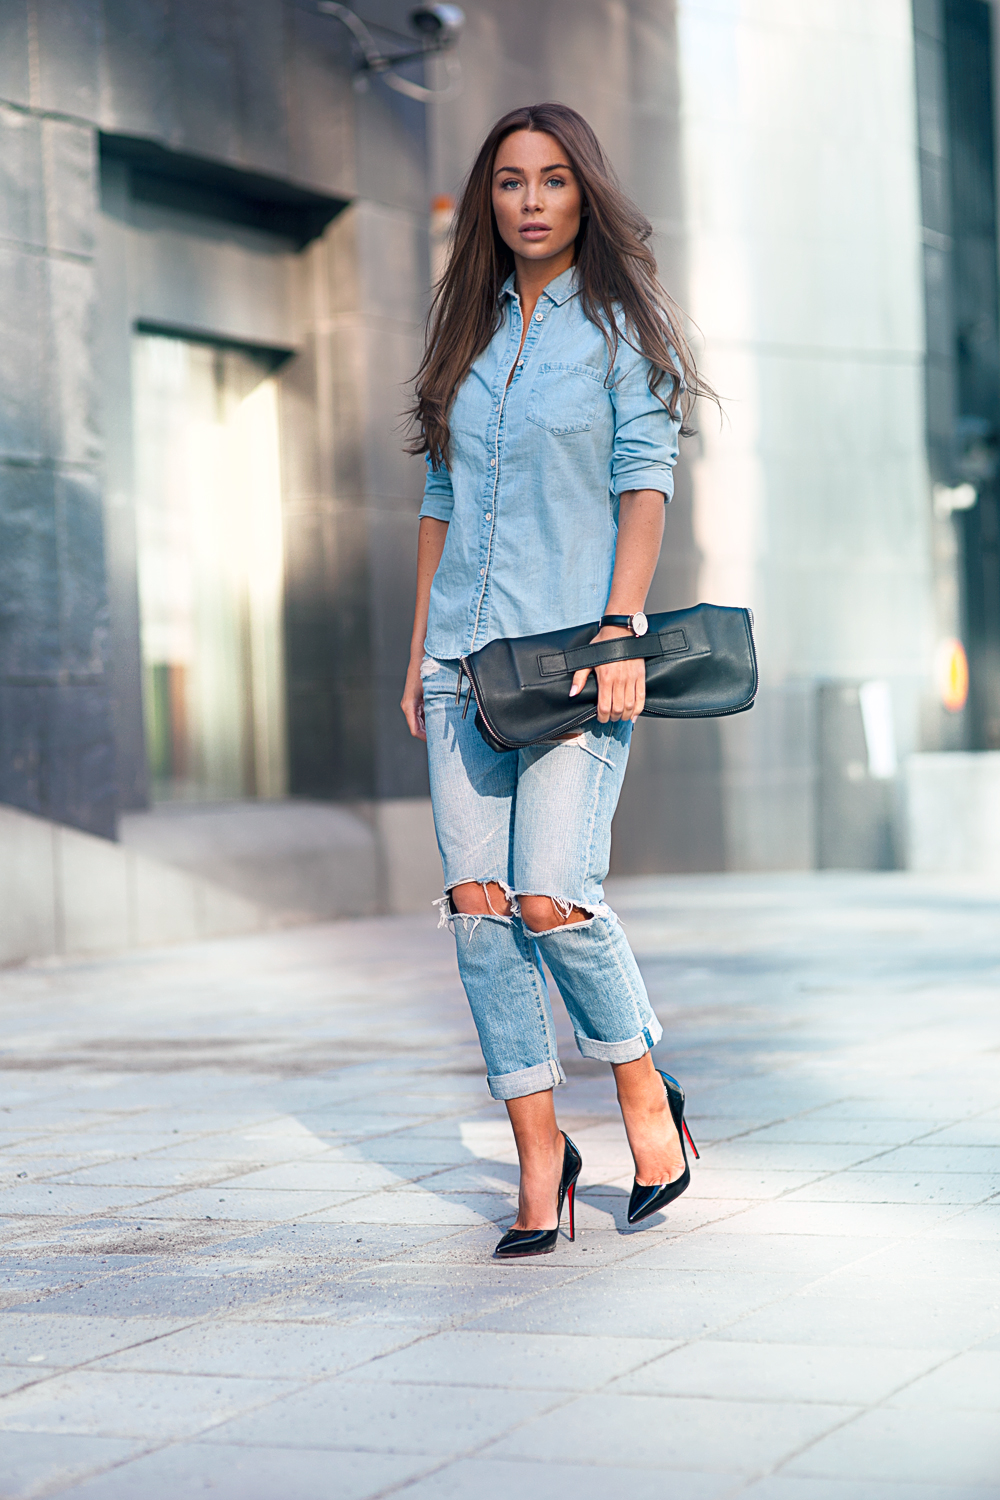 Johanna Olsson is wearing a denim shirt from Lindex and the ripped jeans are from AG